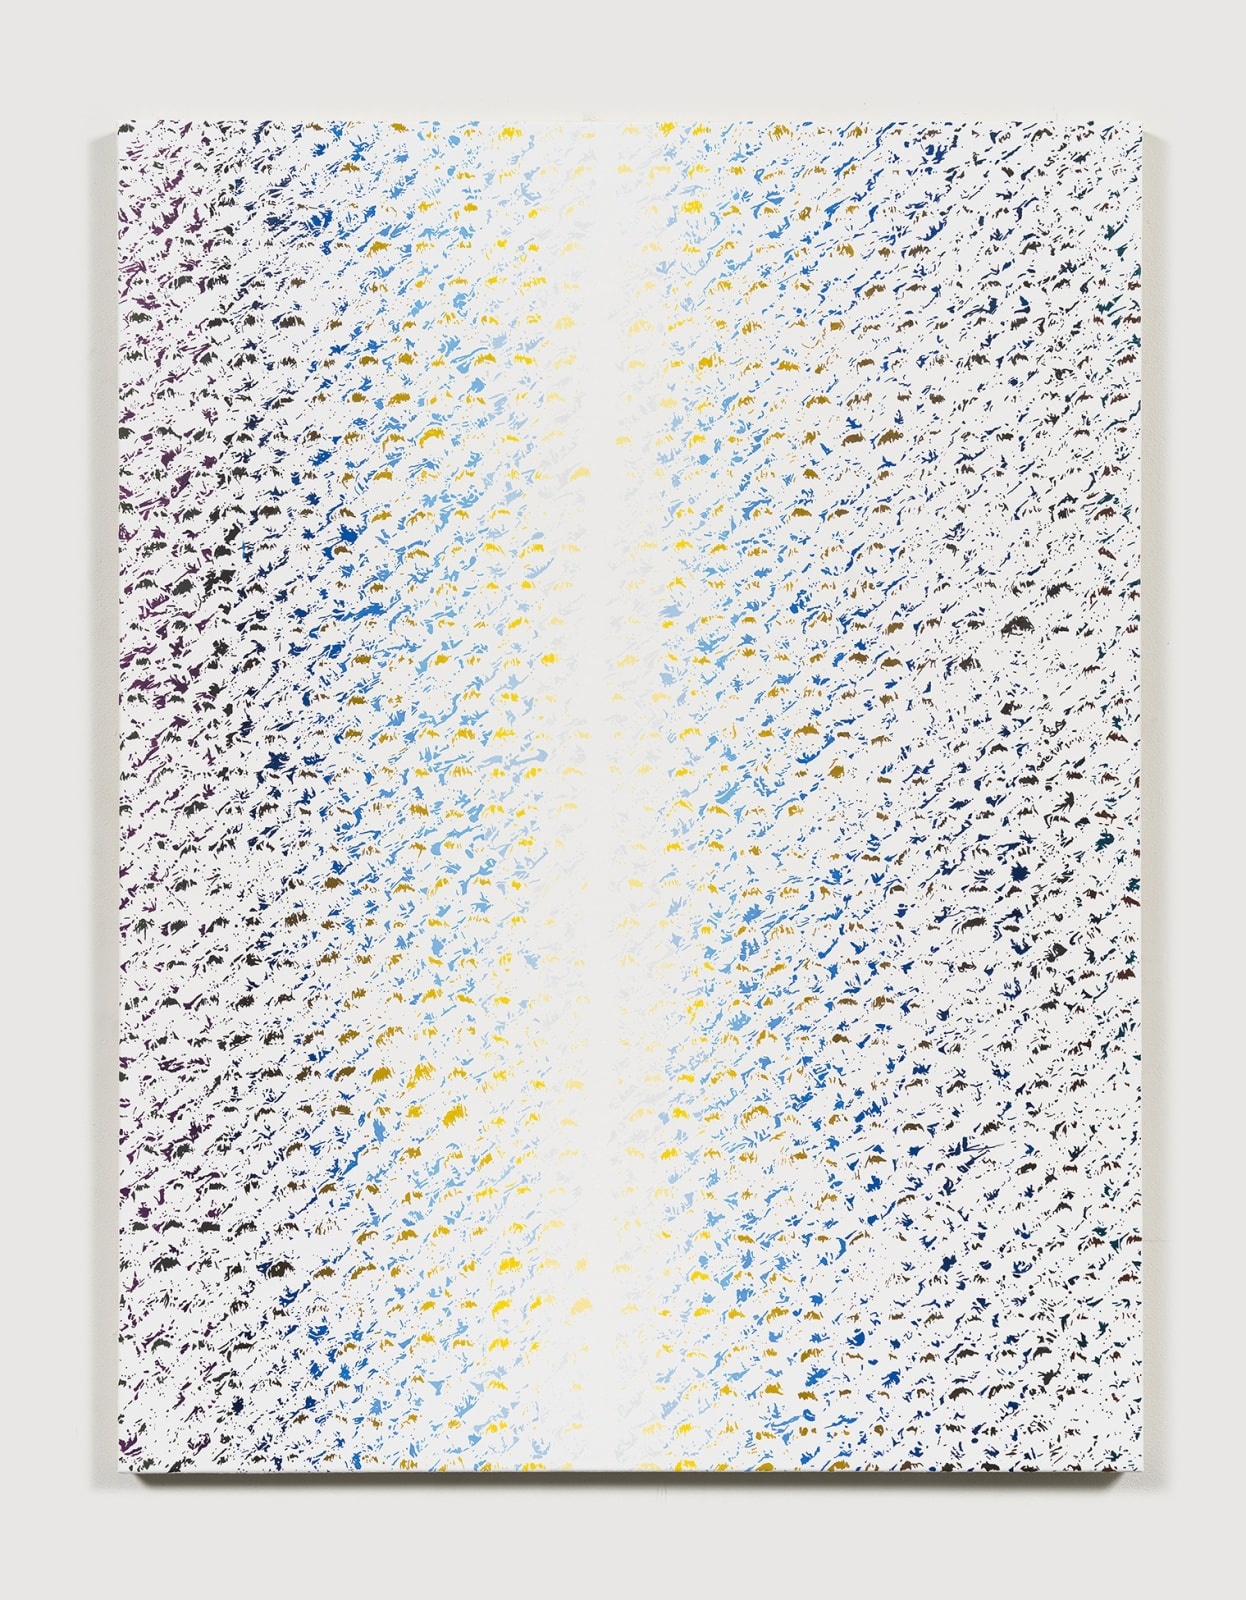 Cheyney Thompson Chronochrome [2E], 2019 Oil on canvas 40 3/4 x 30 7/8 in (103.5 x 78.4 cm)